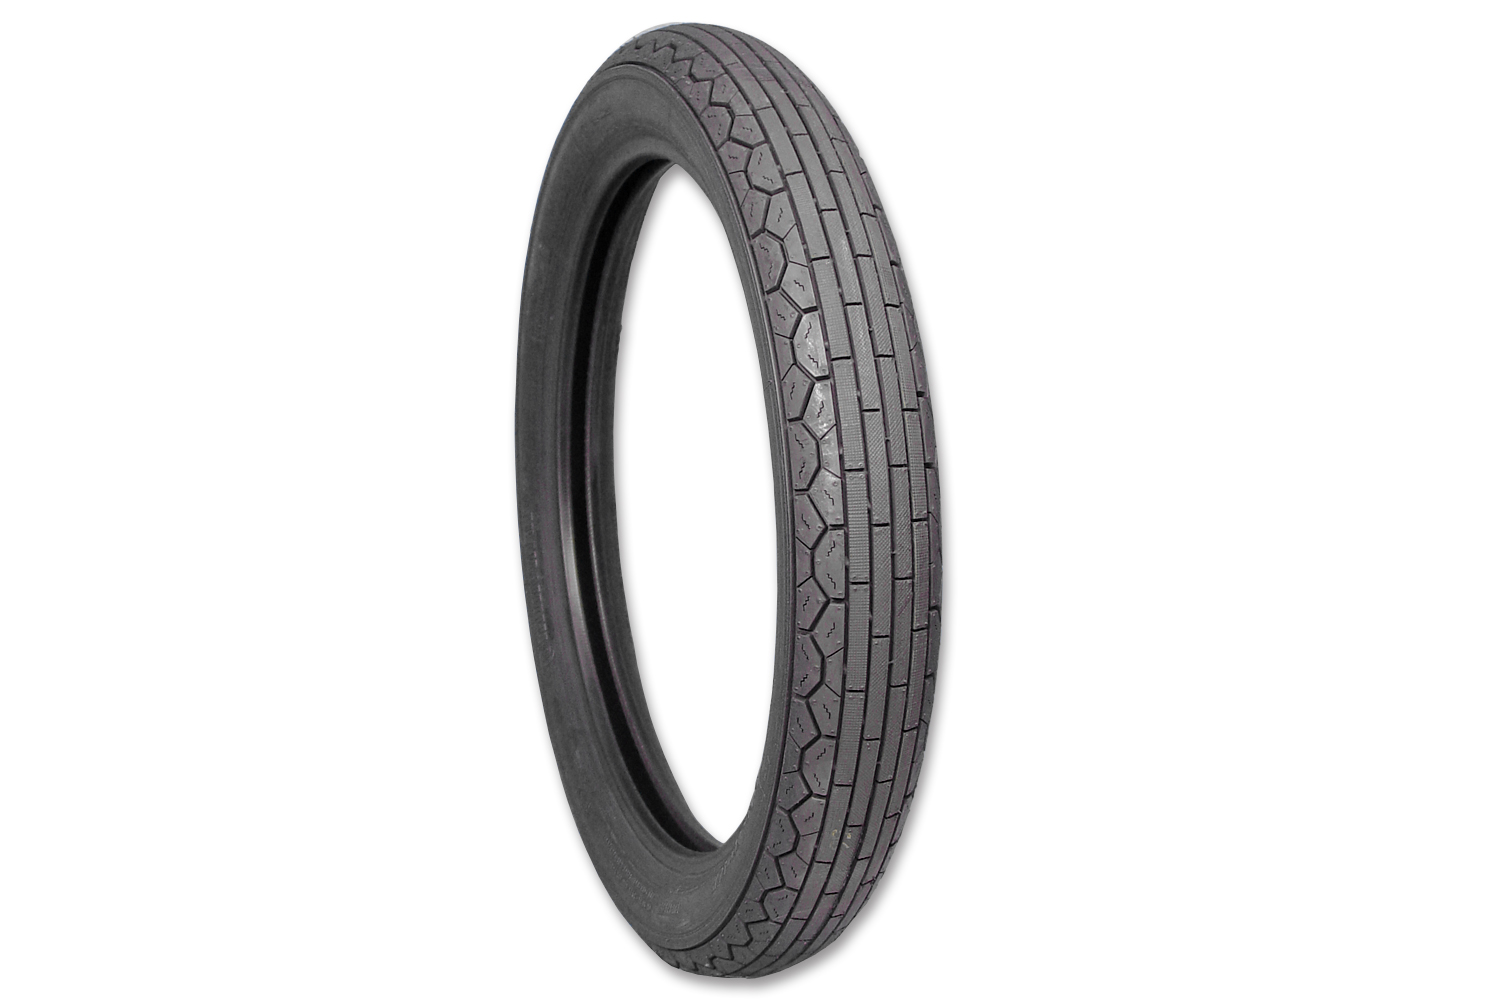 Continental RB-2 3.25 X 19 Front Blackwall Tire for Harley & Customs